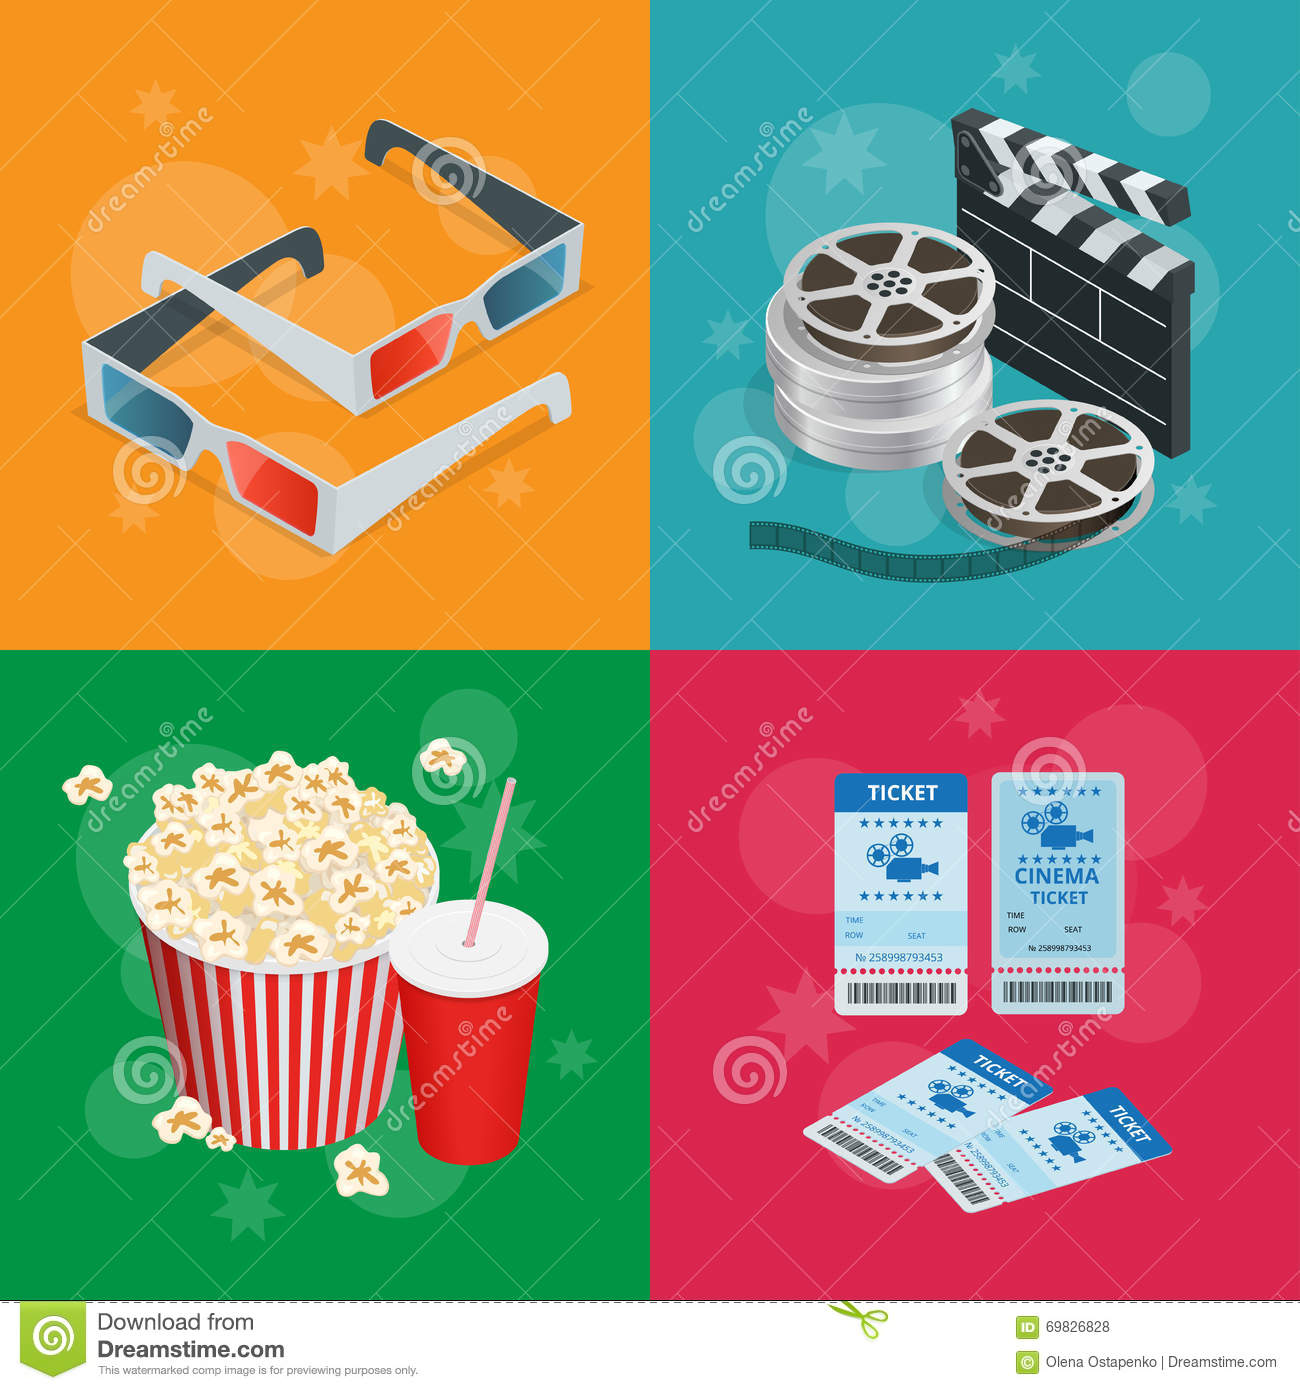 Concept Cinema Banners Realistic With Movie Theatre Elements Poster Template